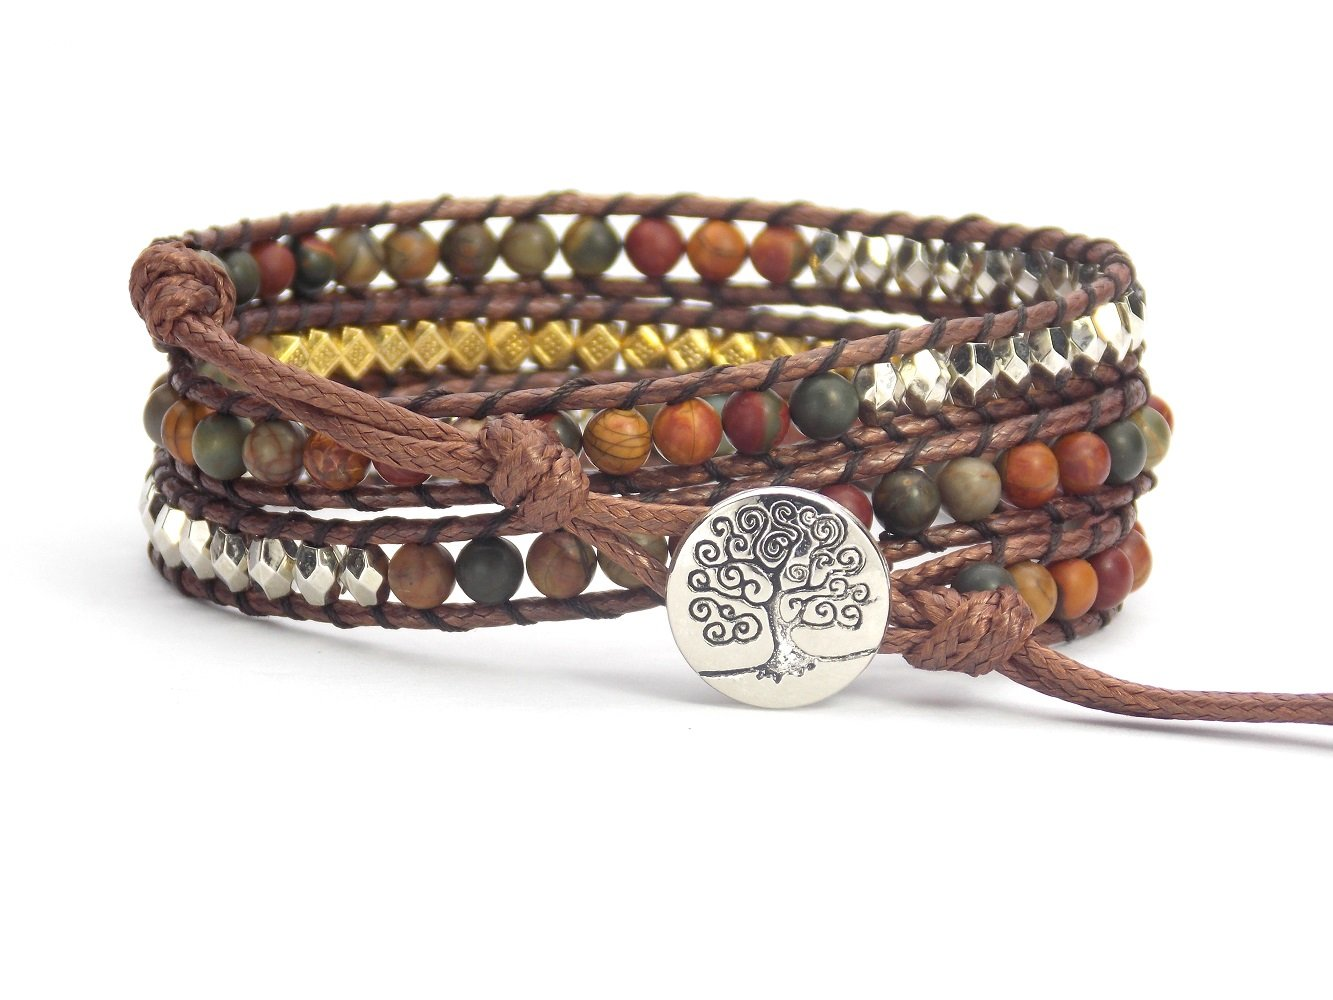 Tree of Life Bracelet Picasso Jasper Beaded Wrap carolyn janes jewelry CJ CJ9000